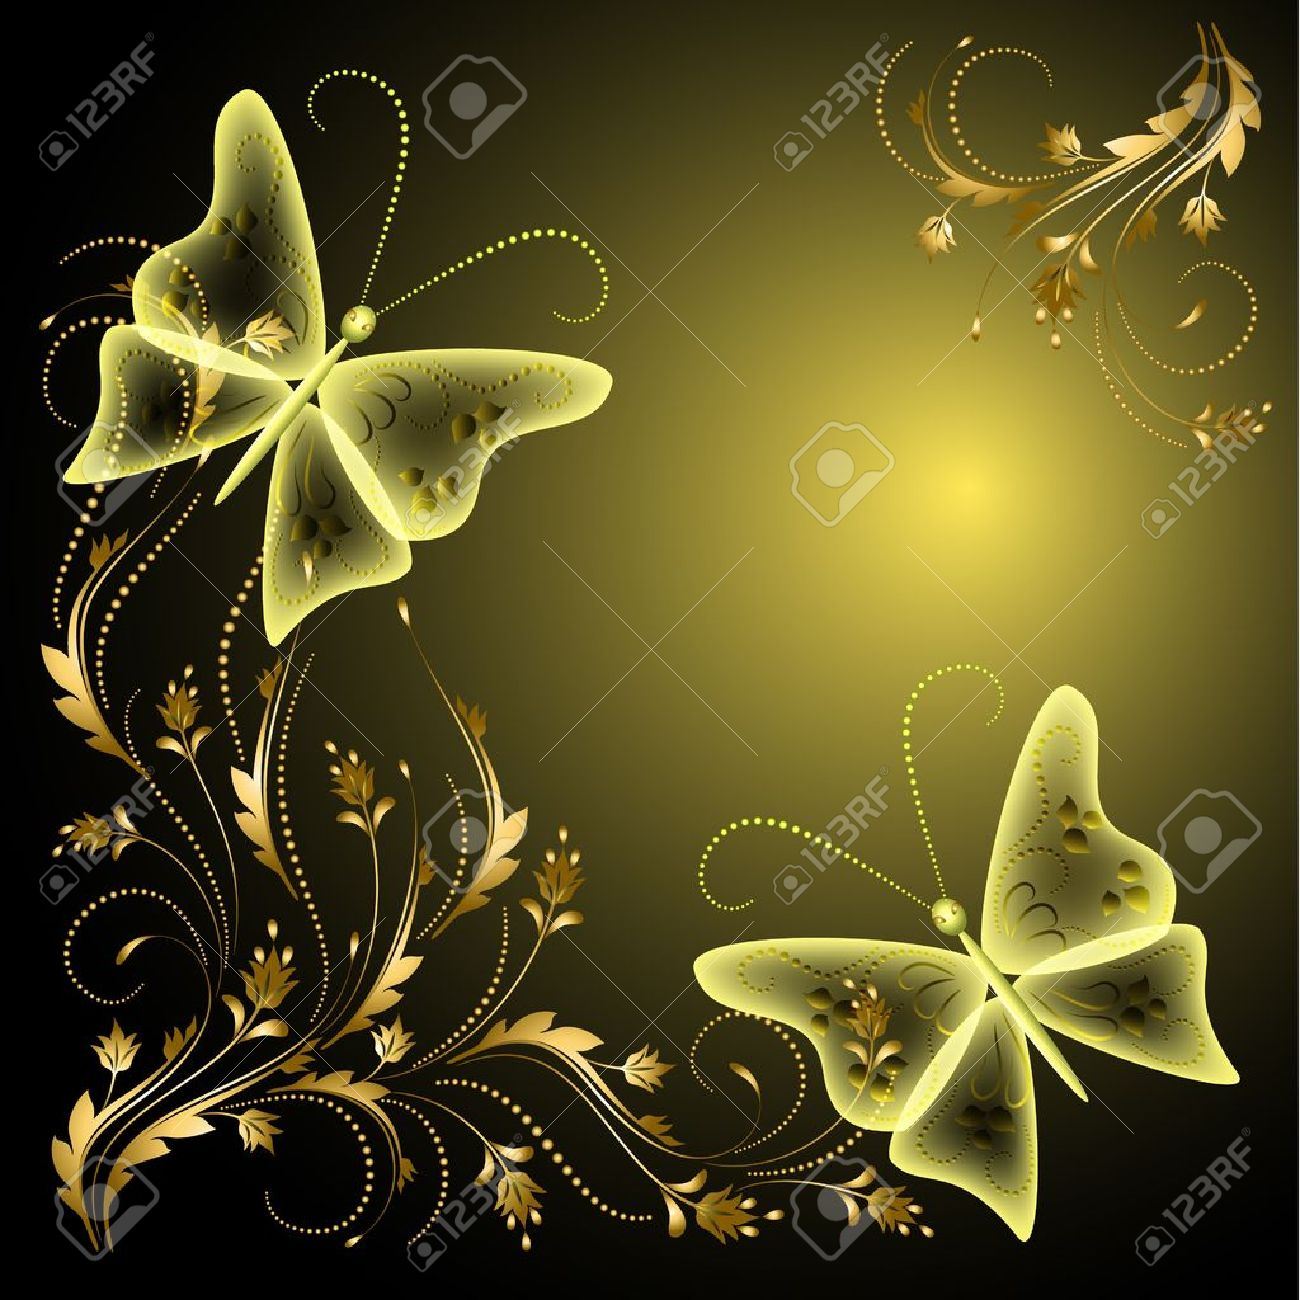 Background with butterflies and golden ornament - 13239248